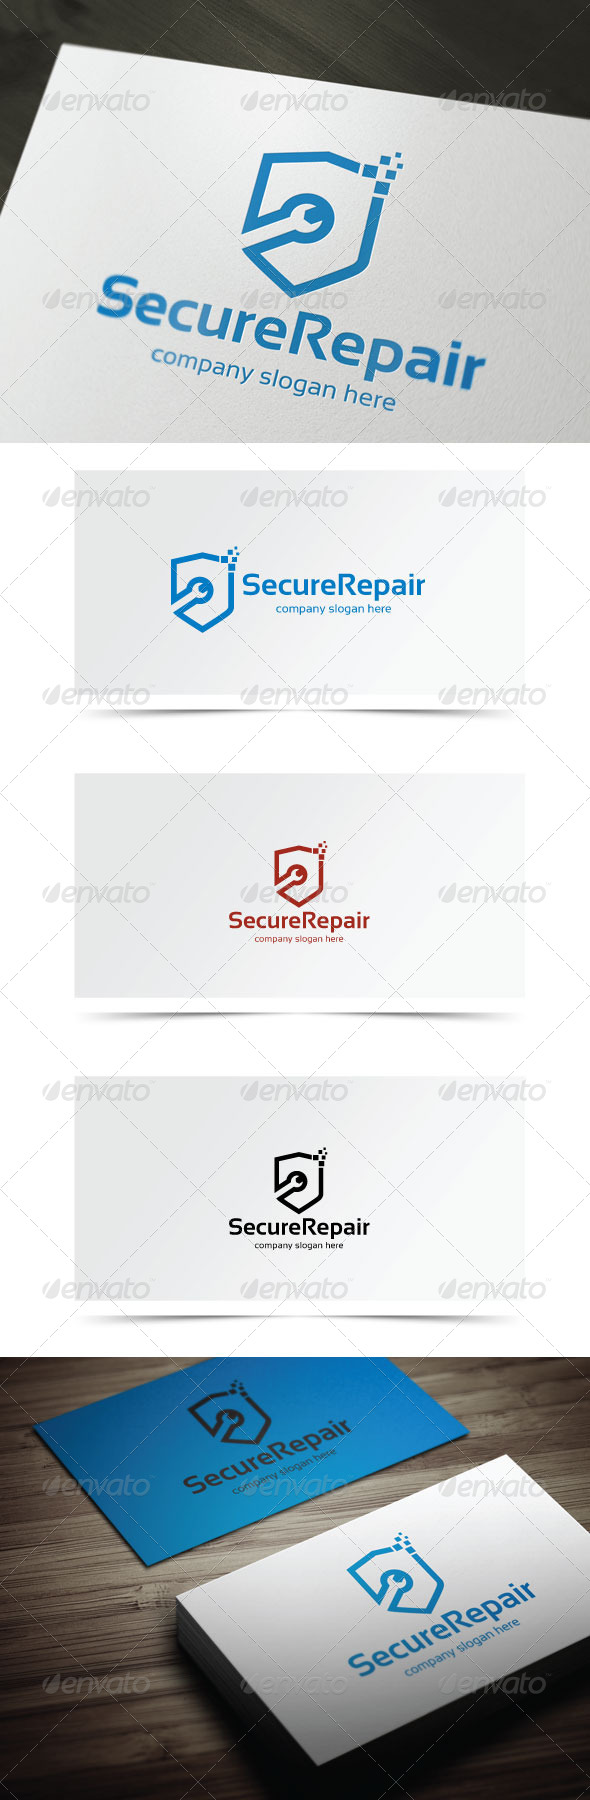 Secure Repair - Symbols Logo Templates